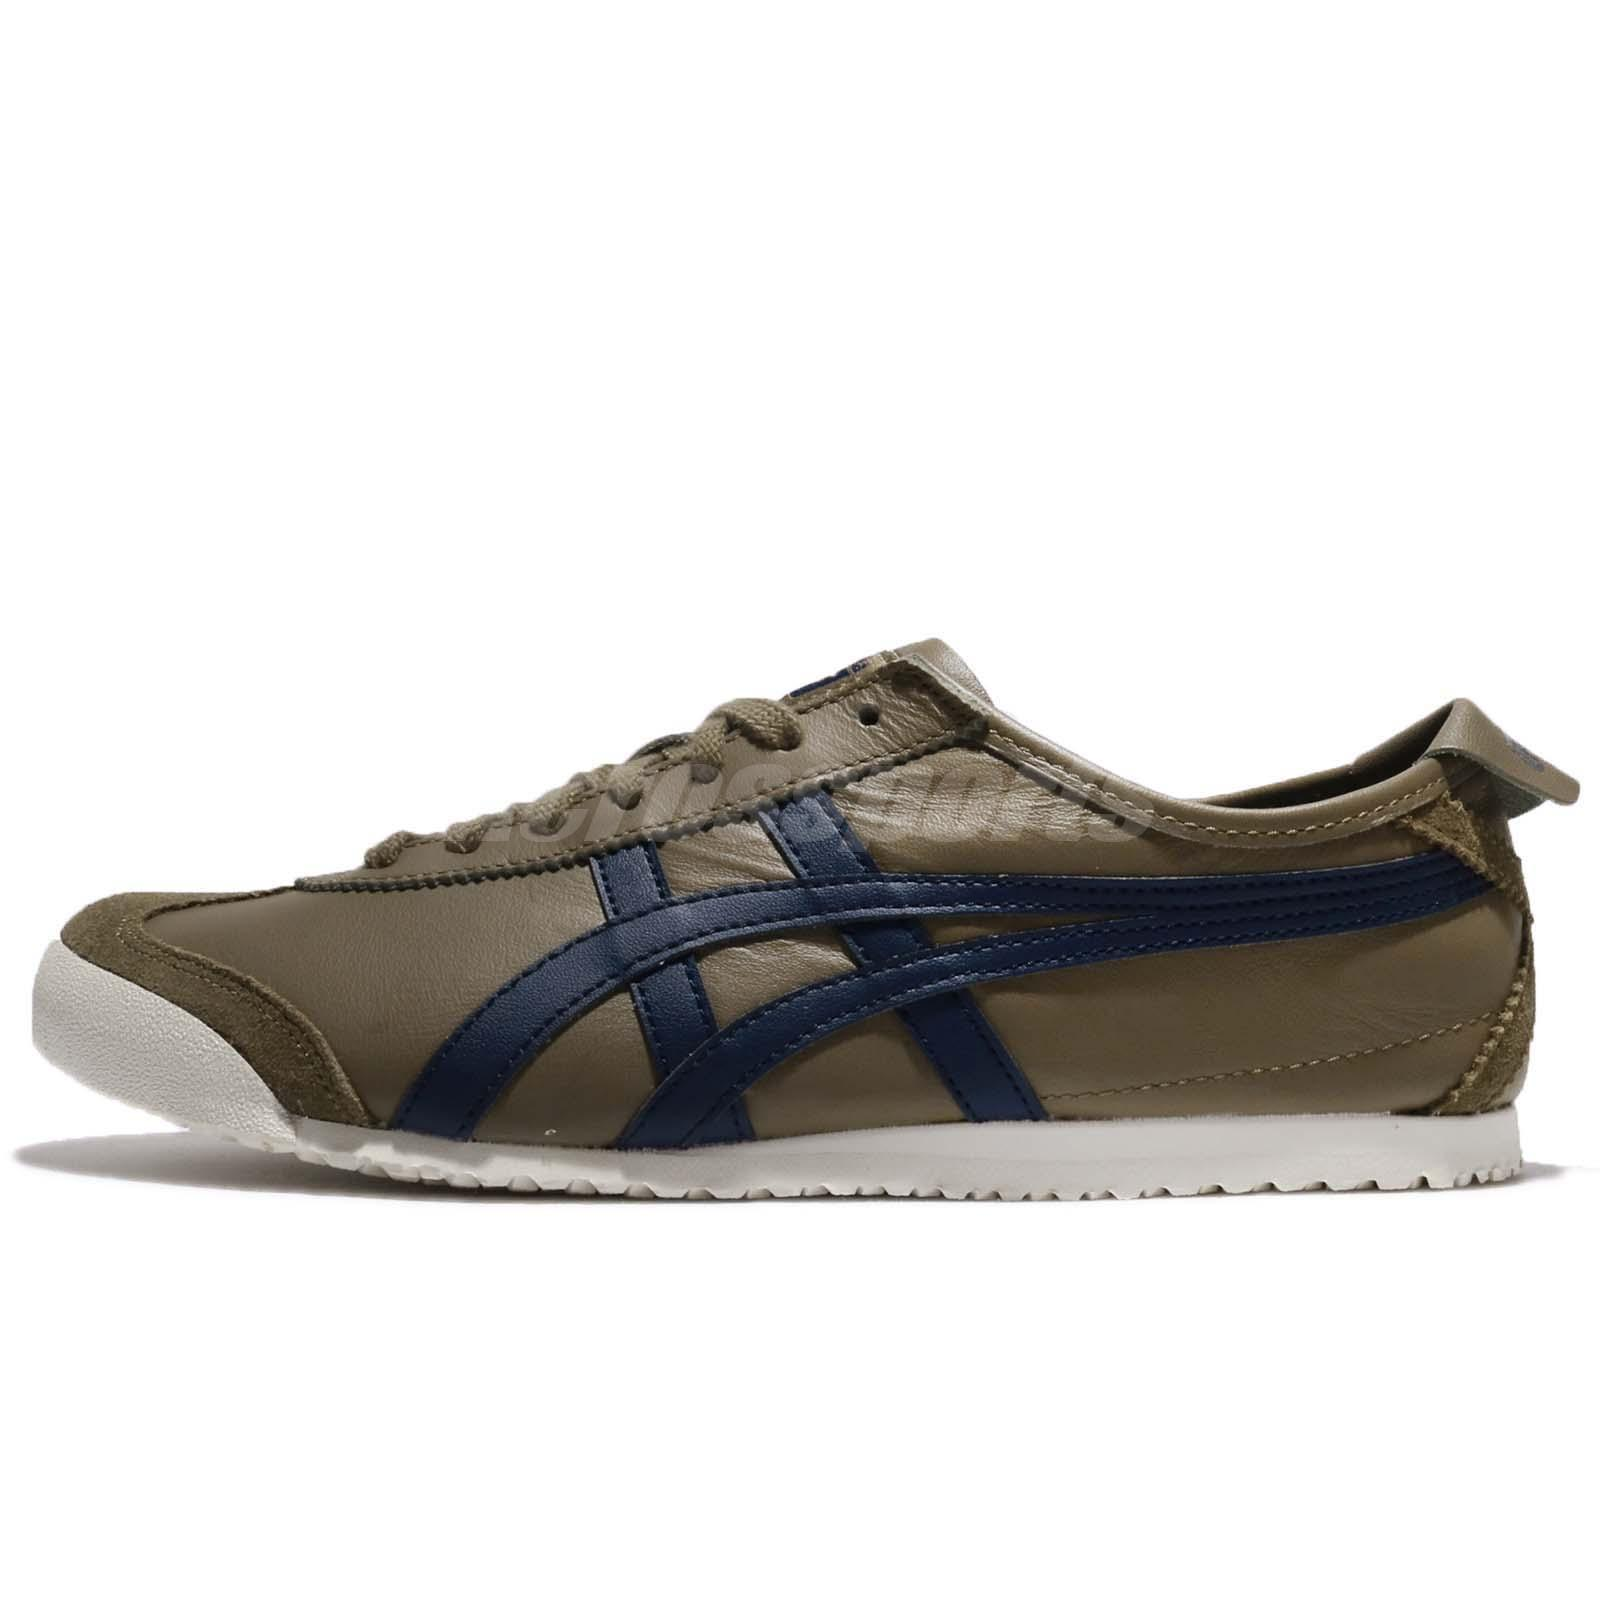 new product 44064 f1026 Details about Asics Onitsuka Tiger Mexico 66 Martini Olive Peacoat Leather  Men Shoe D4J2L-8658